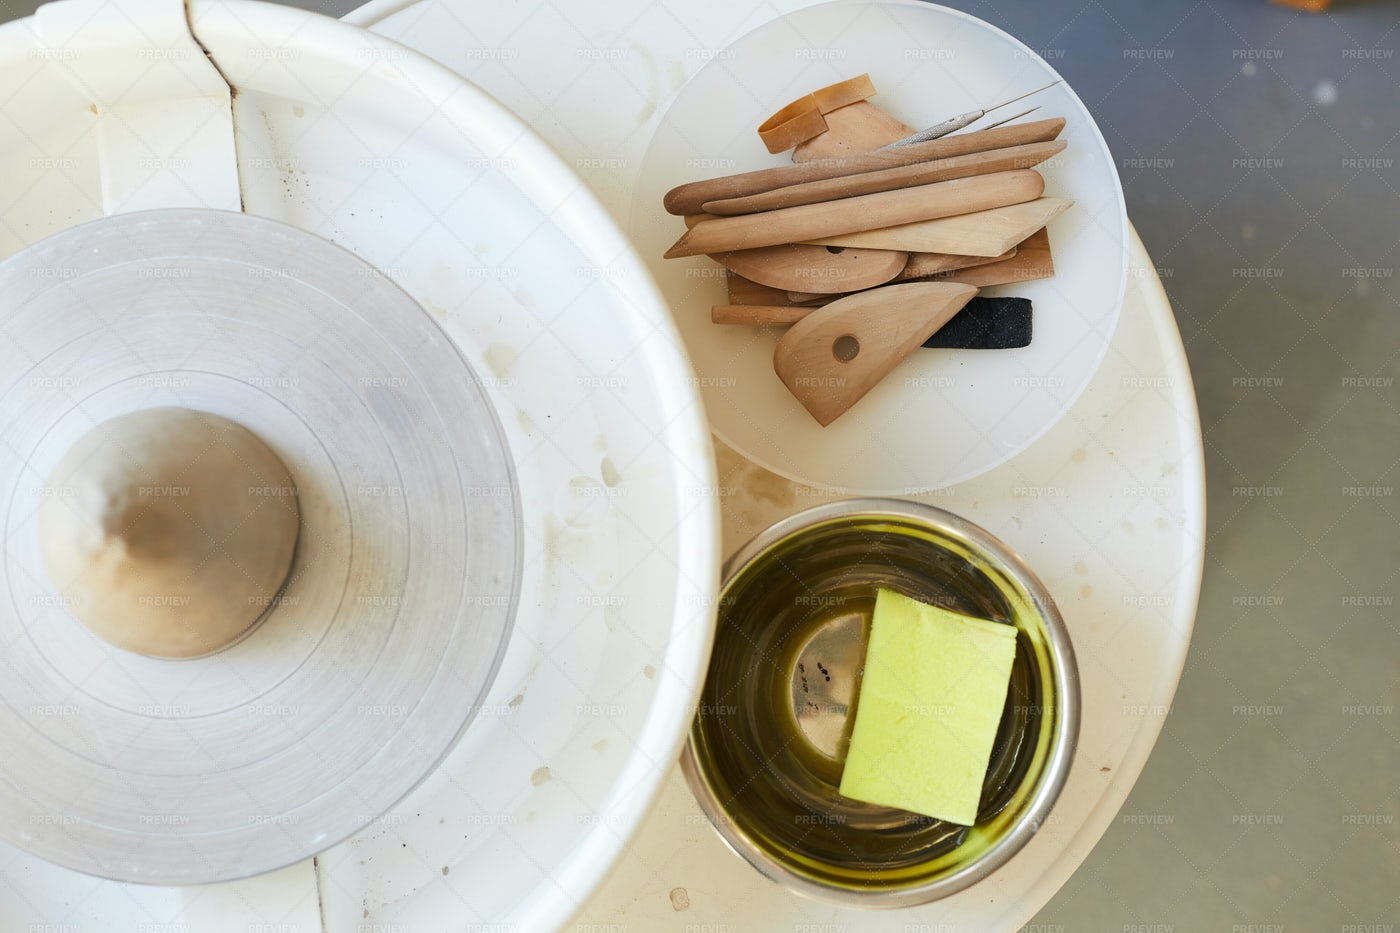 Potters Wheel Above View: Stock Photos